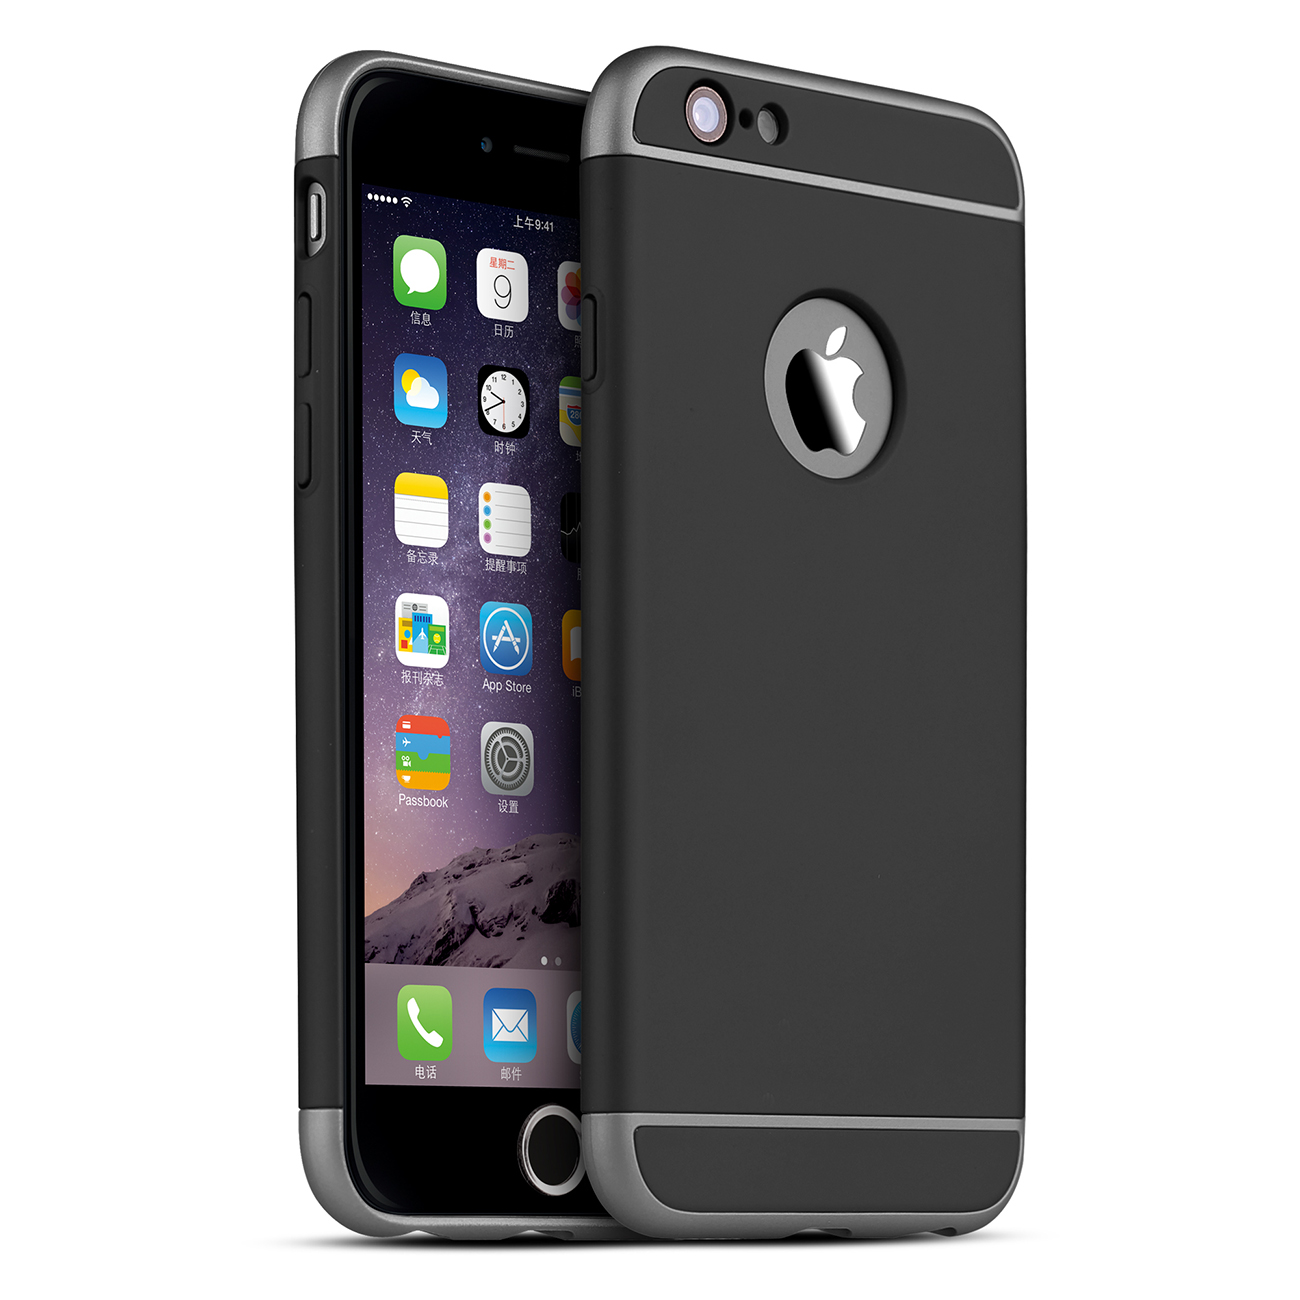 apple iphone 6 plus case gummierte schwarz schutzh 252 lle vapiao f 252 r apple iphone 1412